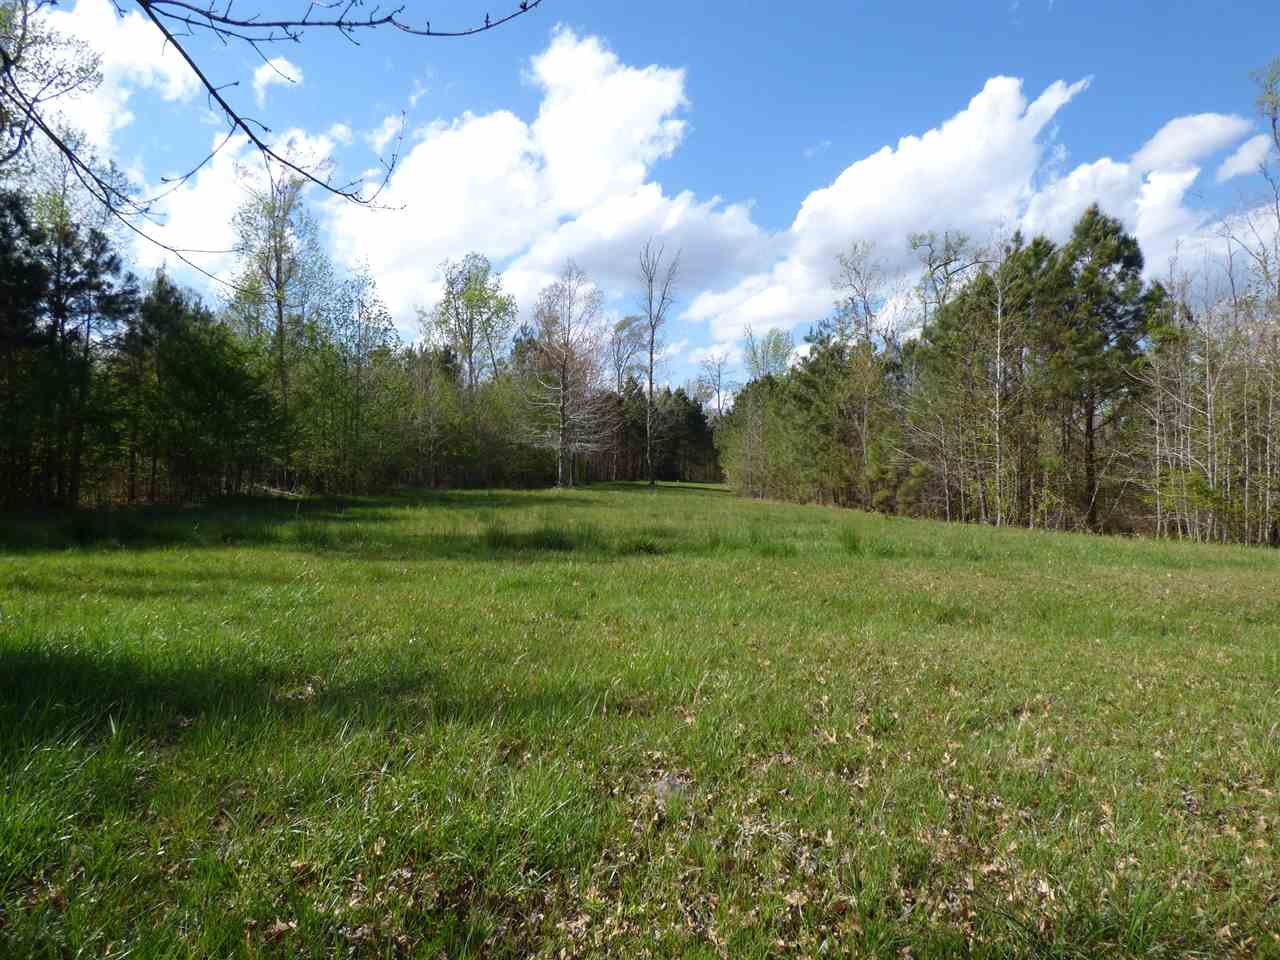 211 Osprey Drive, Edenton, NC 27932, ,Lots/land,For sale,Osprey Drive,91911